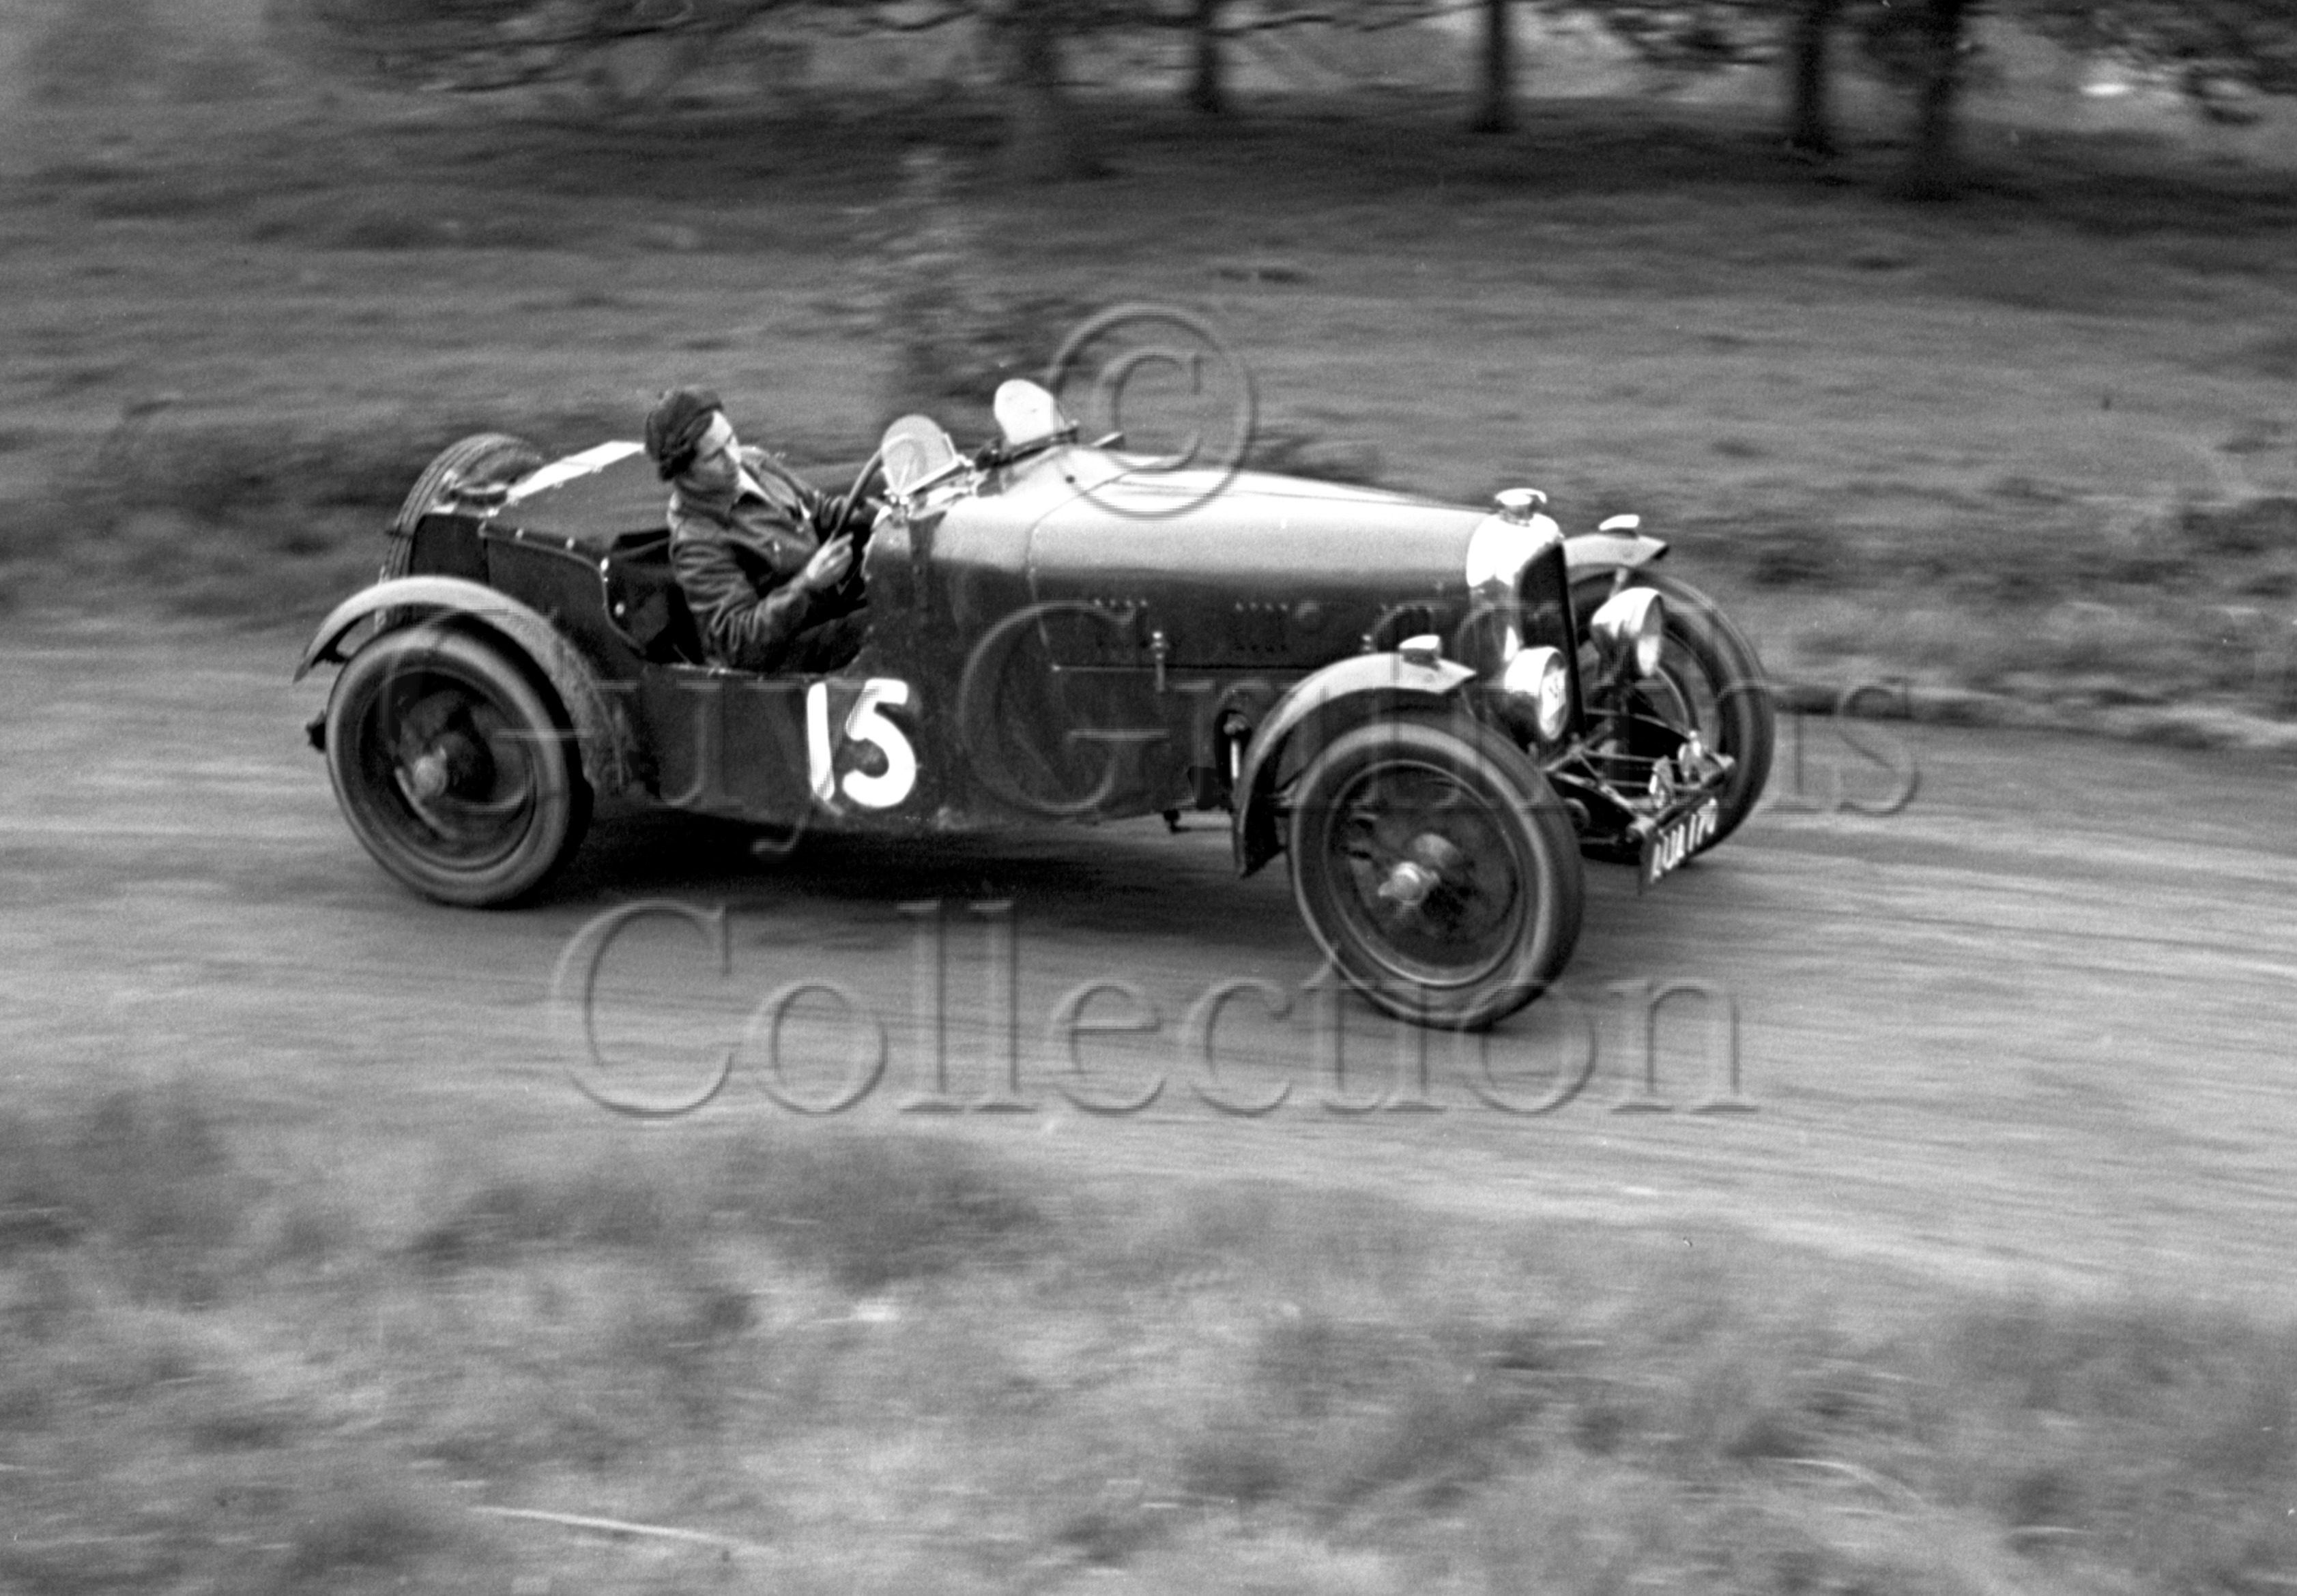 30-311–M-Harman–Rapier–Prescott–20-05-1950.jpg - The Guy Griffiths Collection